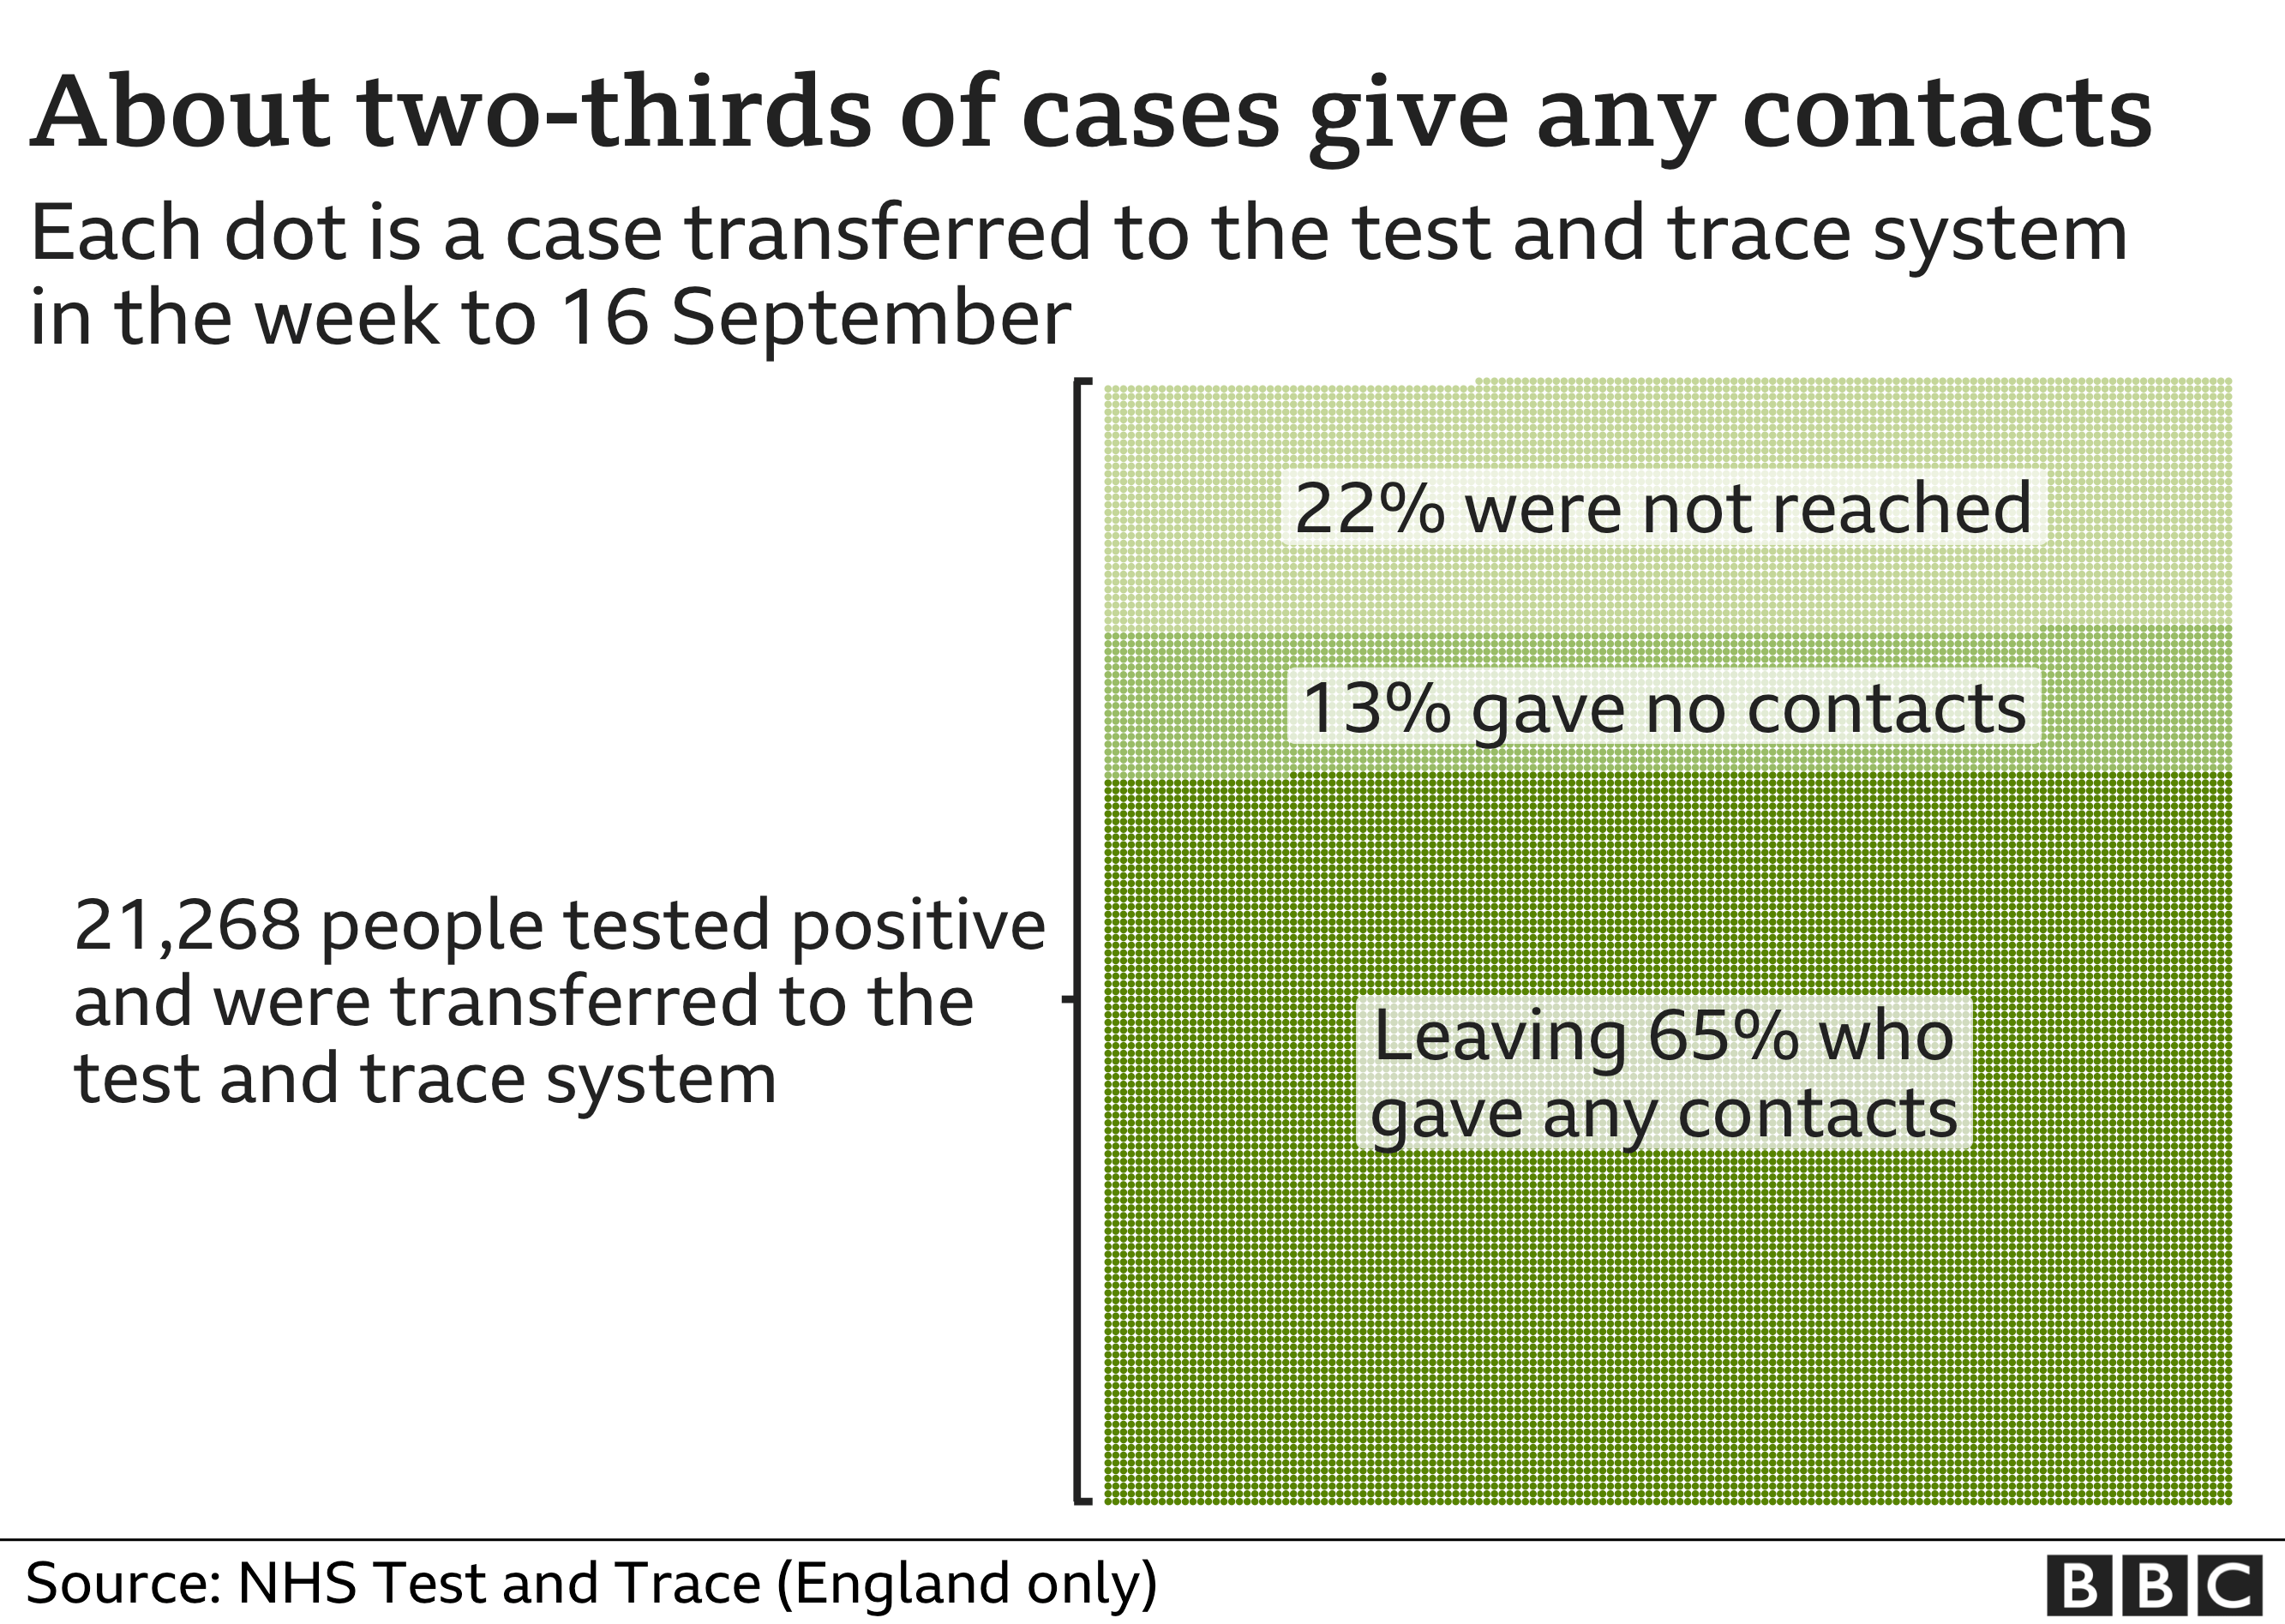 Graphic: About two-thirds of cases do not provide details for any contacts